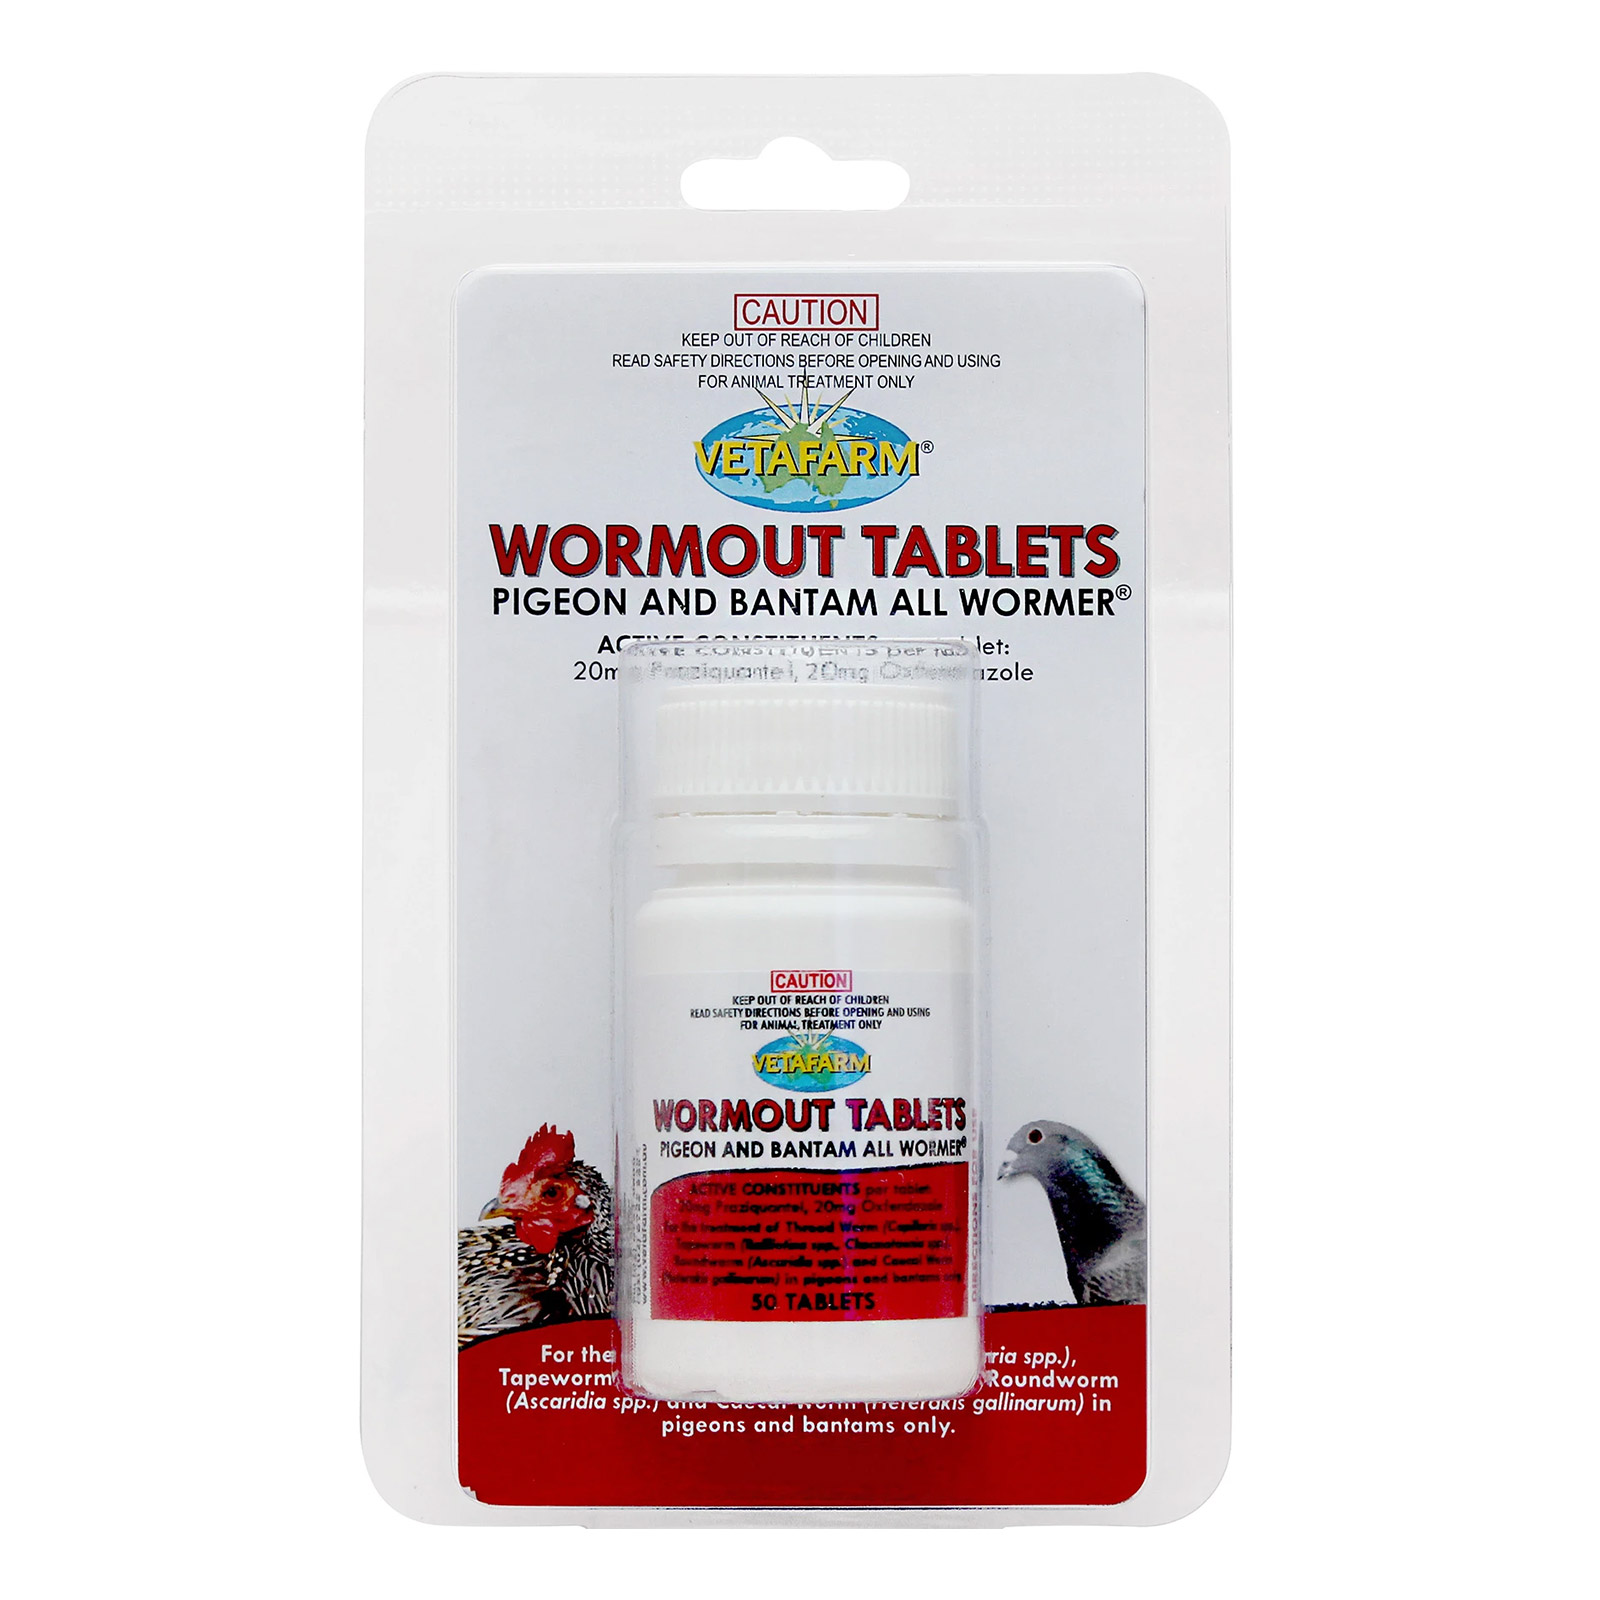 VetaFarm Wormout Tablets for Pigeons and Bantams